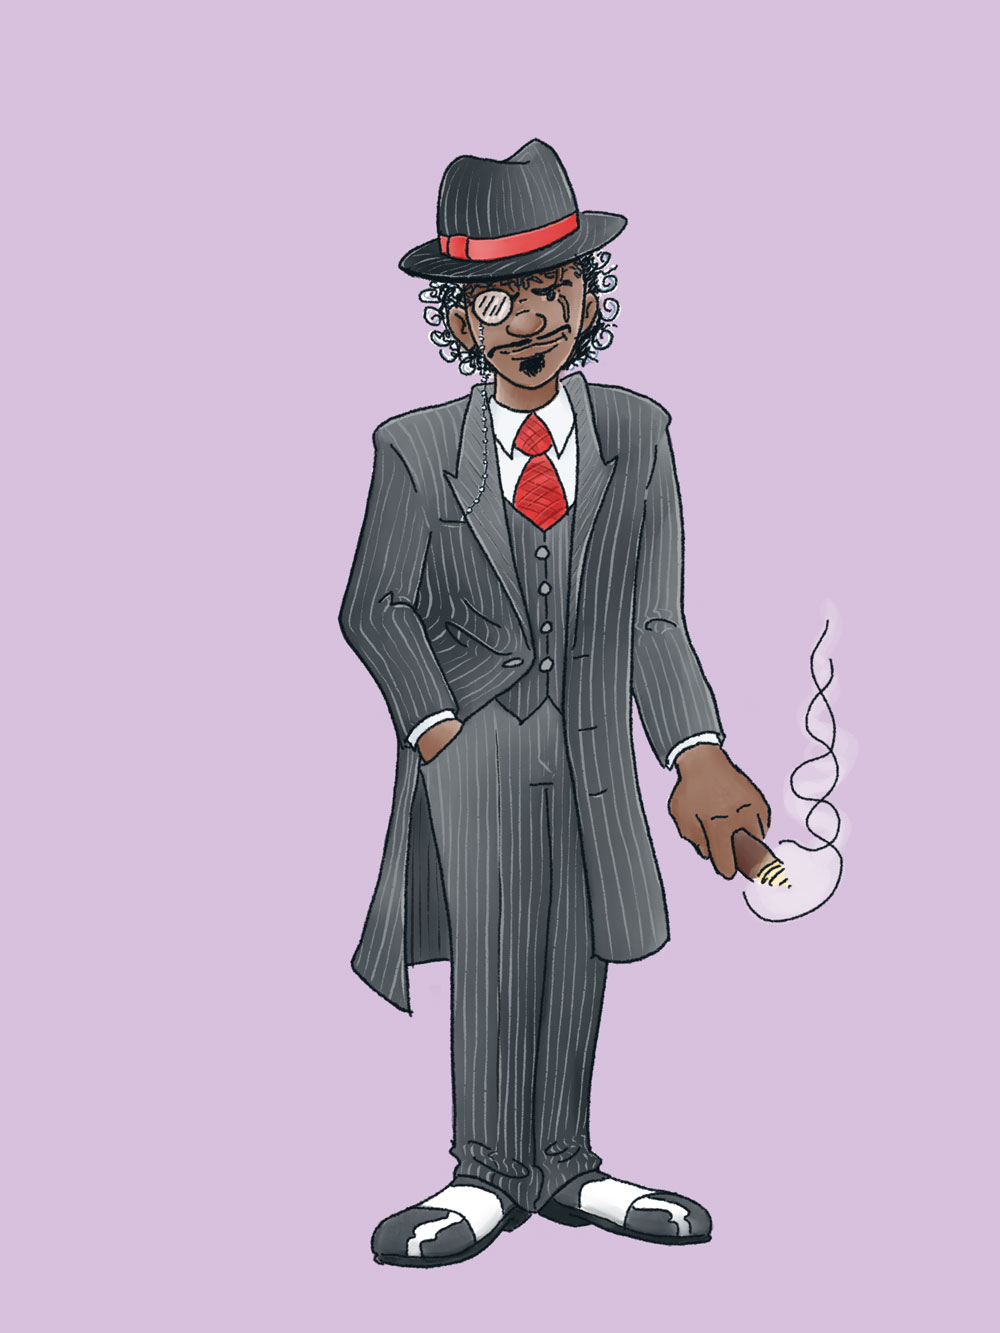 Midnight Oil - An African man sporting a pin-striped suit straight out of the 1920's American Gangster era. An agent of Dead Line, his work starts when everyone else is going home.